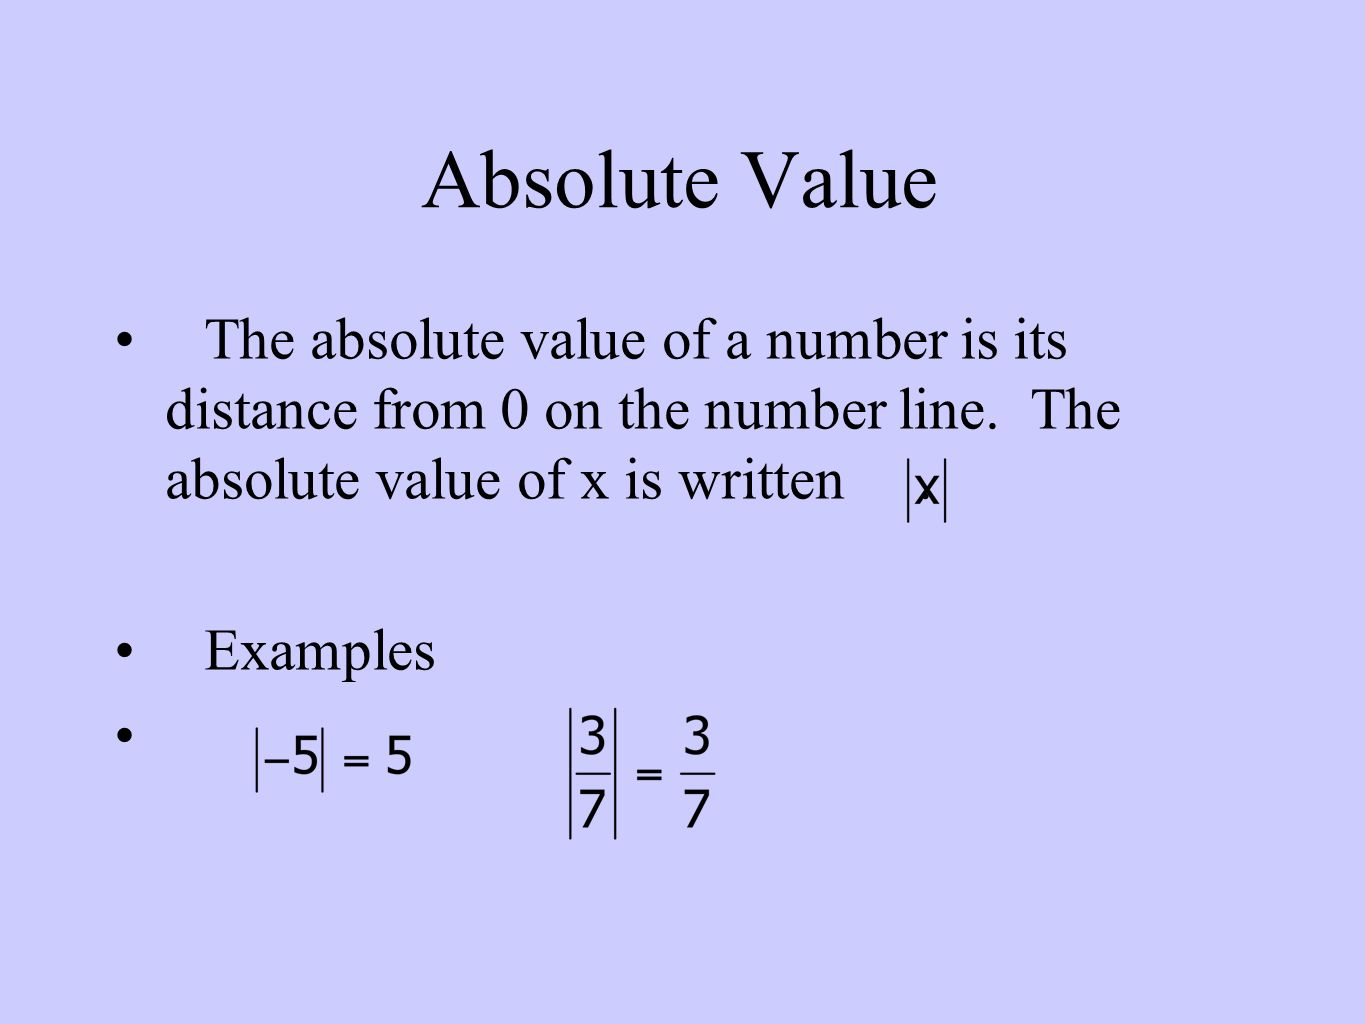 Absolute Value The absolute value of a number is its distance from 0 on the number line.